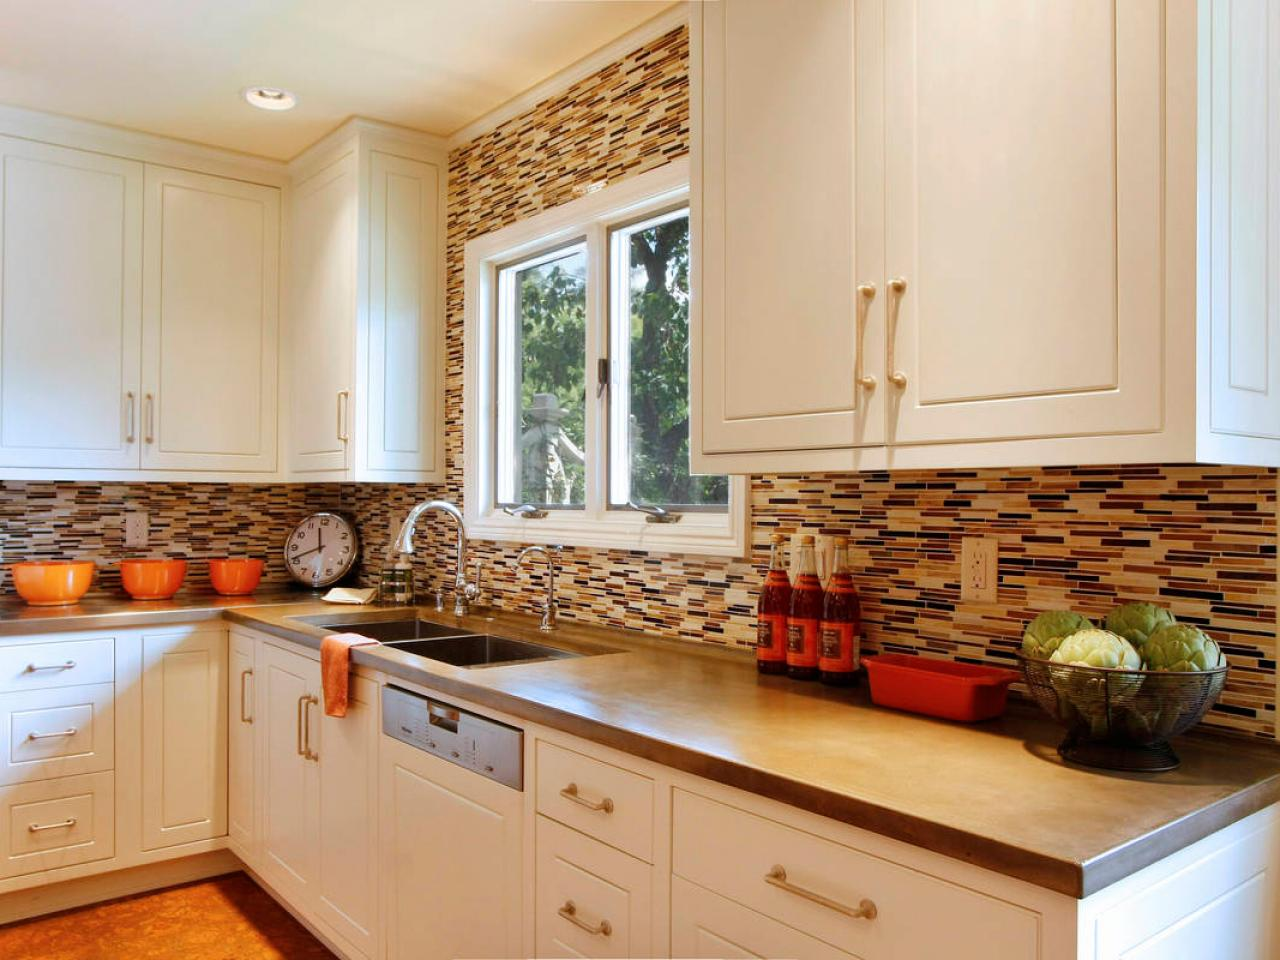 Kitchen backsplash accent tile